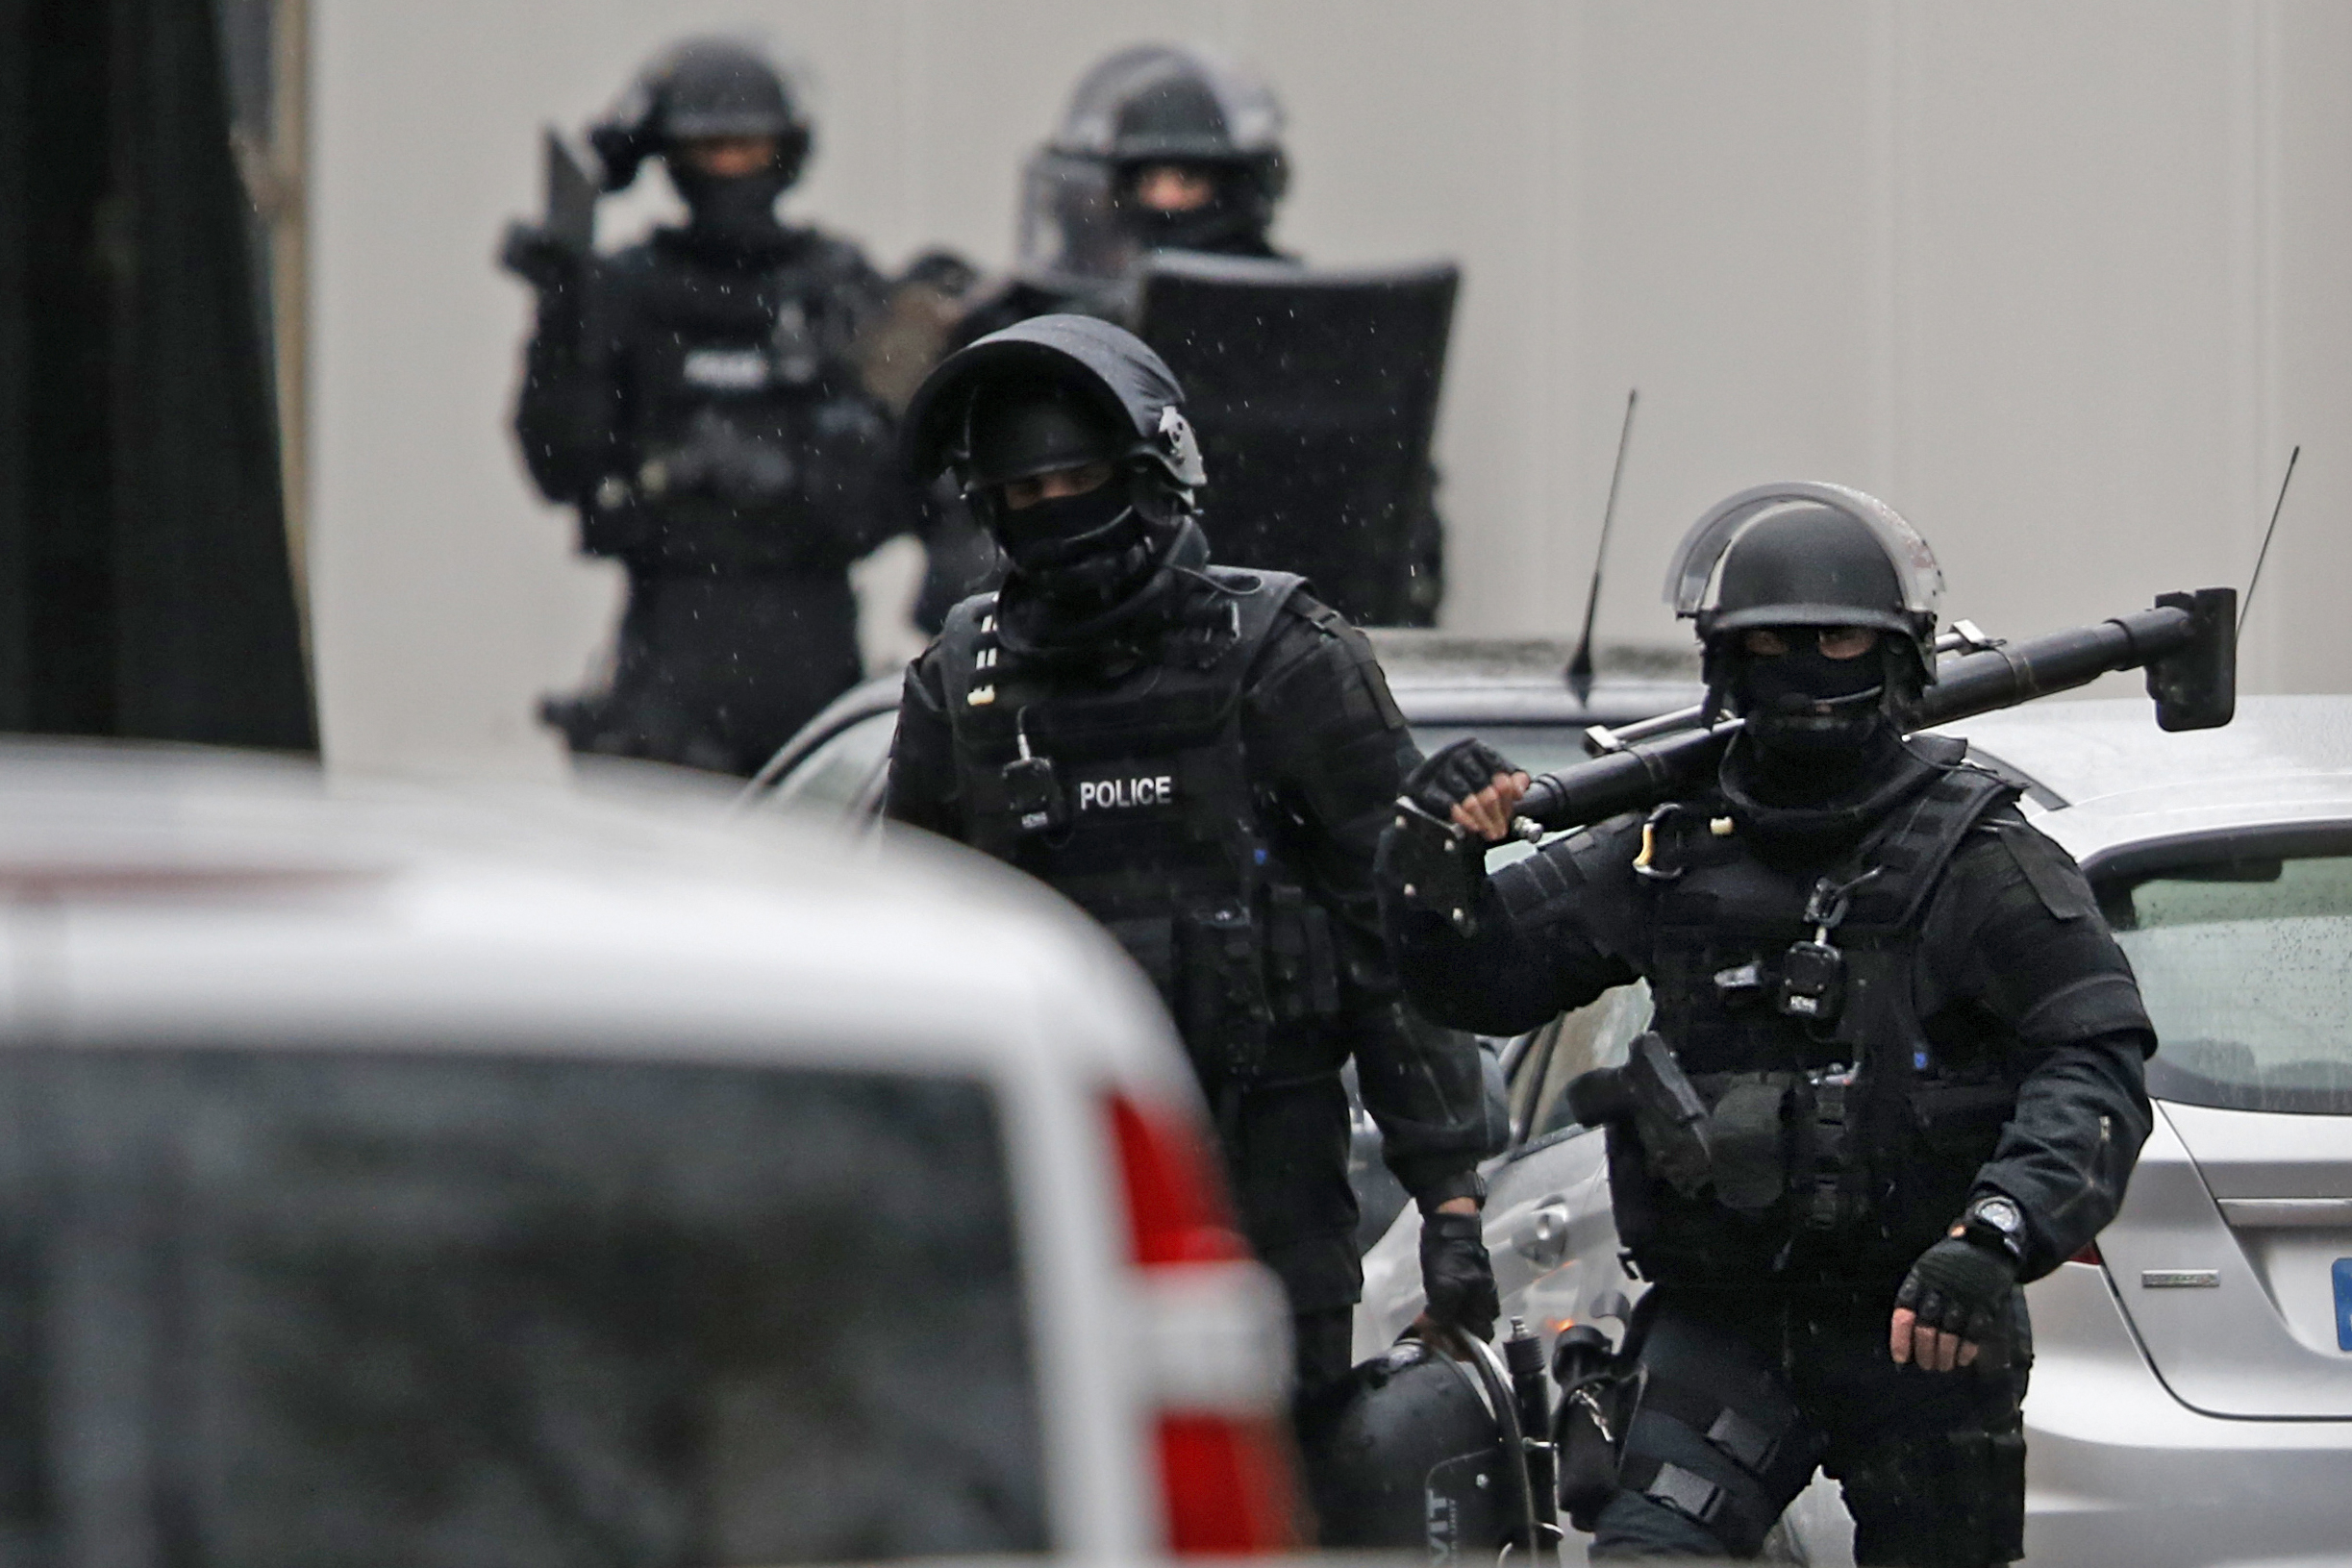 Members of French special police forces of Research and Intervention Brigade (BRI) are seen at the scene of a shooting in the street of Montrouge near Paris January 8, 2015. A policewoman was killed in a shootout in southern Paris on Thursday, triggering searches in the area as the manhunt widened for two brothers suspected of killing 12 people at a satirical magazine in an apparent Islamist militant strike. Police sources could not immediately confirm a link with the killings at Charlie Hebdo weekly newspaper which marked the worst attack on French soil for decades and which national leaders and allied states described as an assault on democracy. REUTERS/Charles Platiau (FRANCE - Tags: MILITARY CRIME LAW) - RTR4KKLE